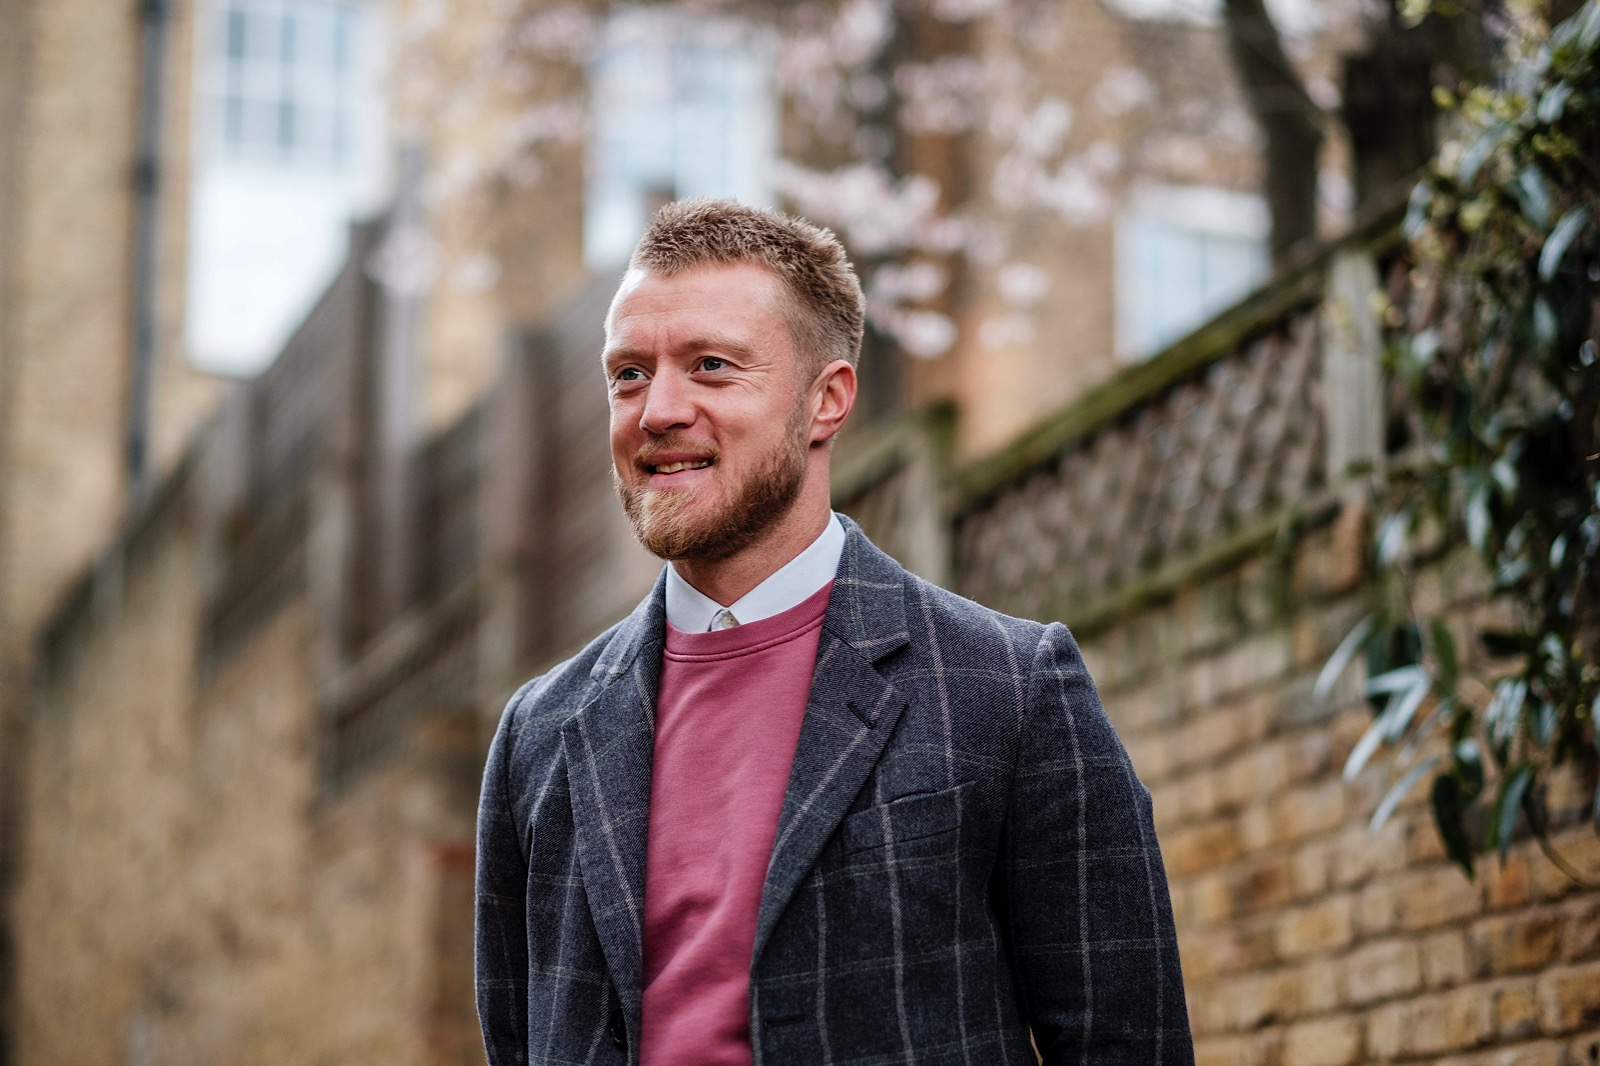 Business Portrait of a man smiling in an urban setting in London